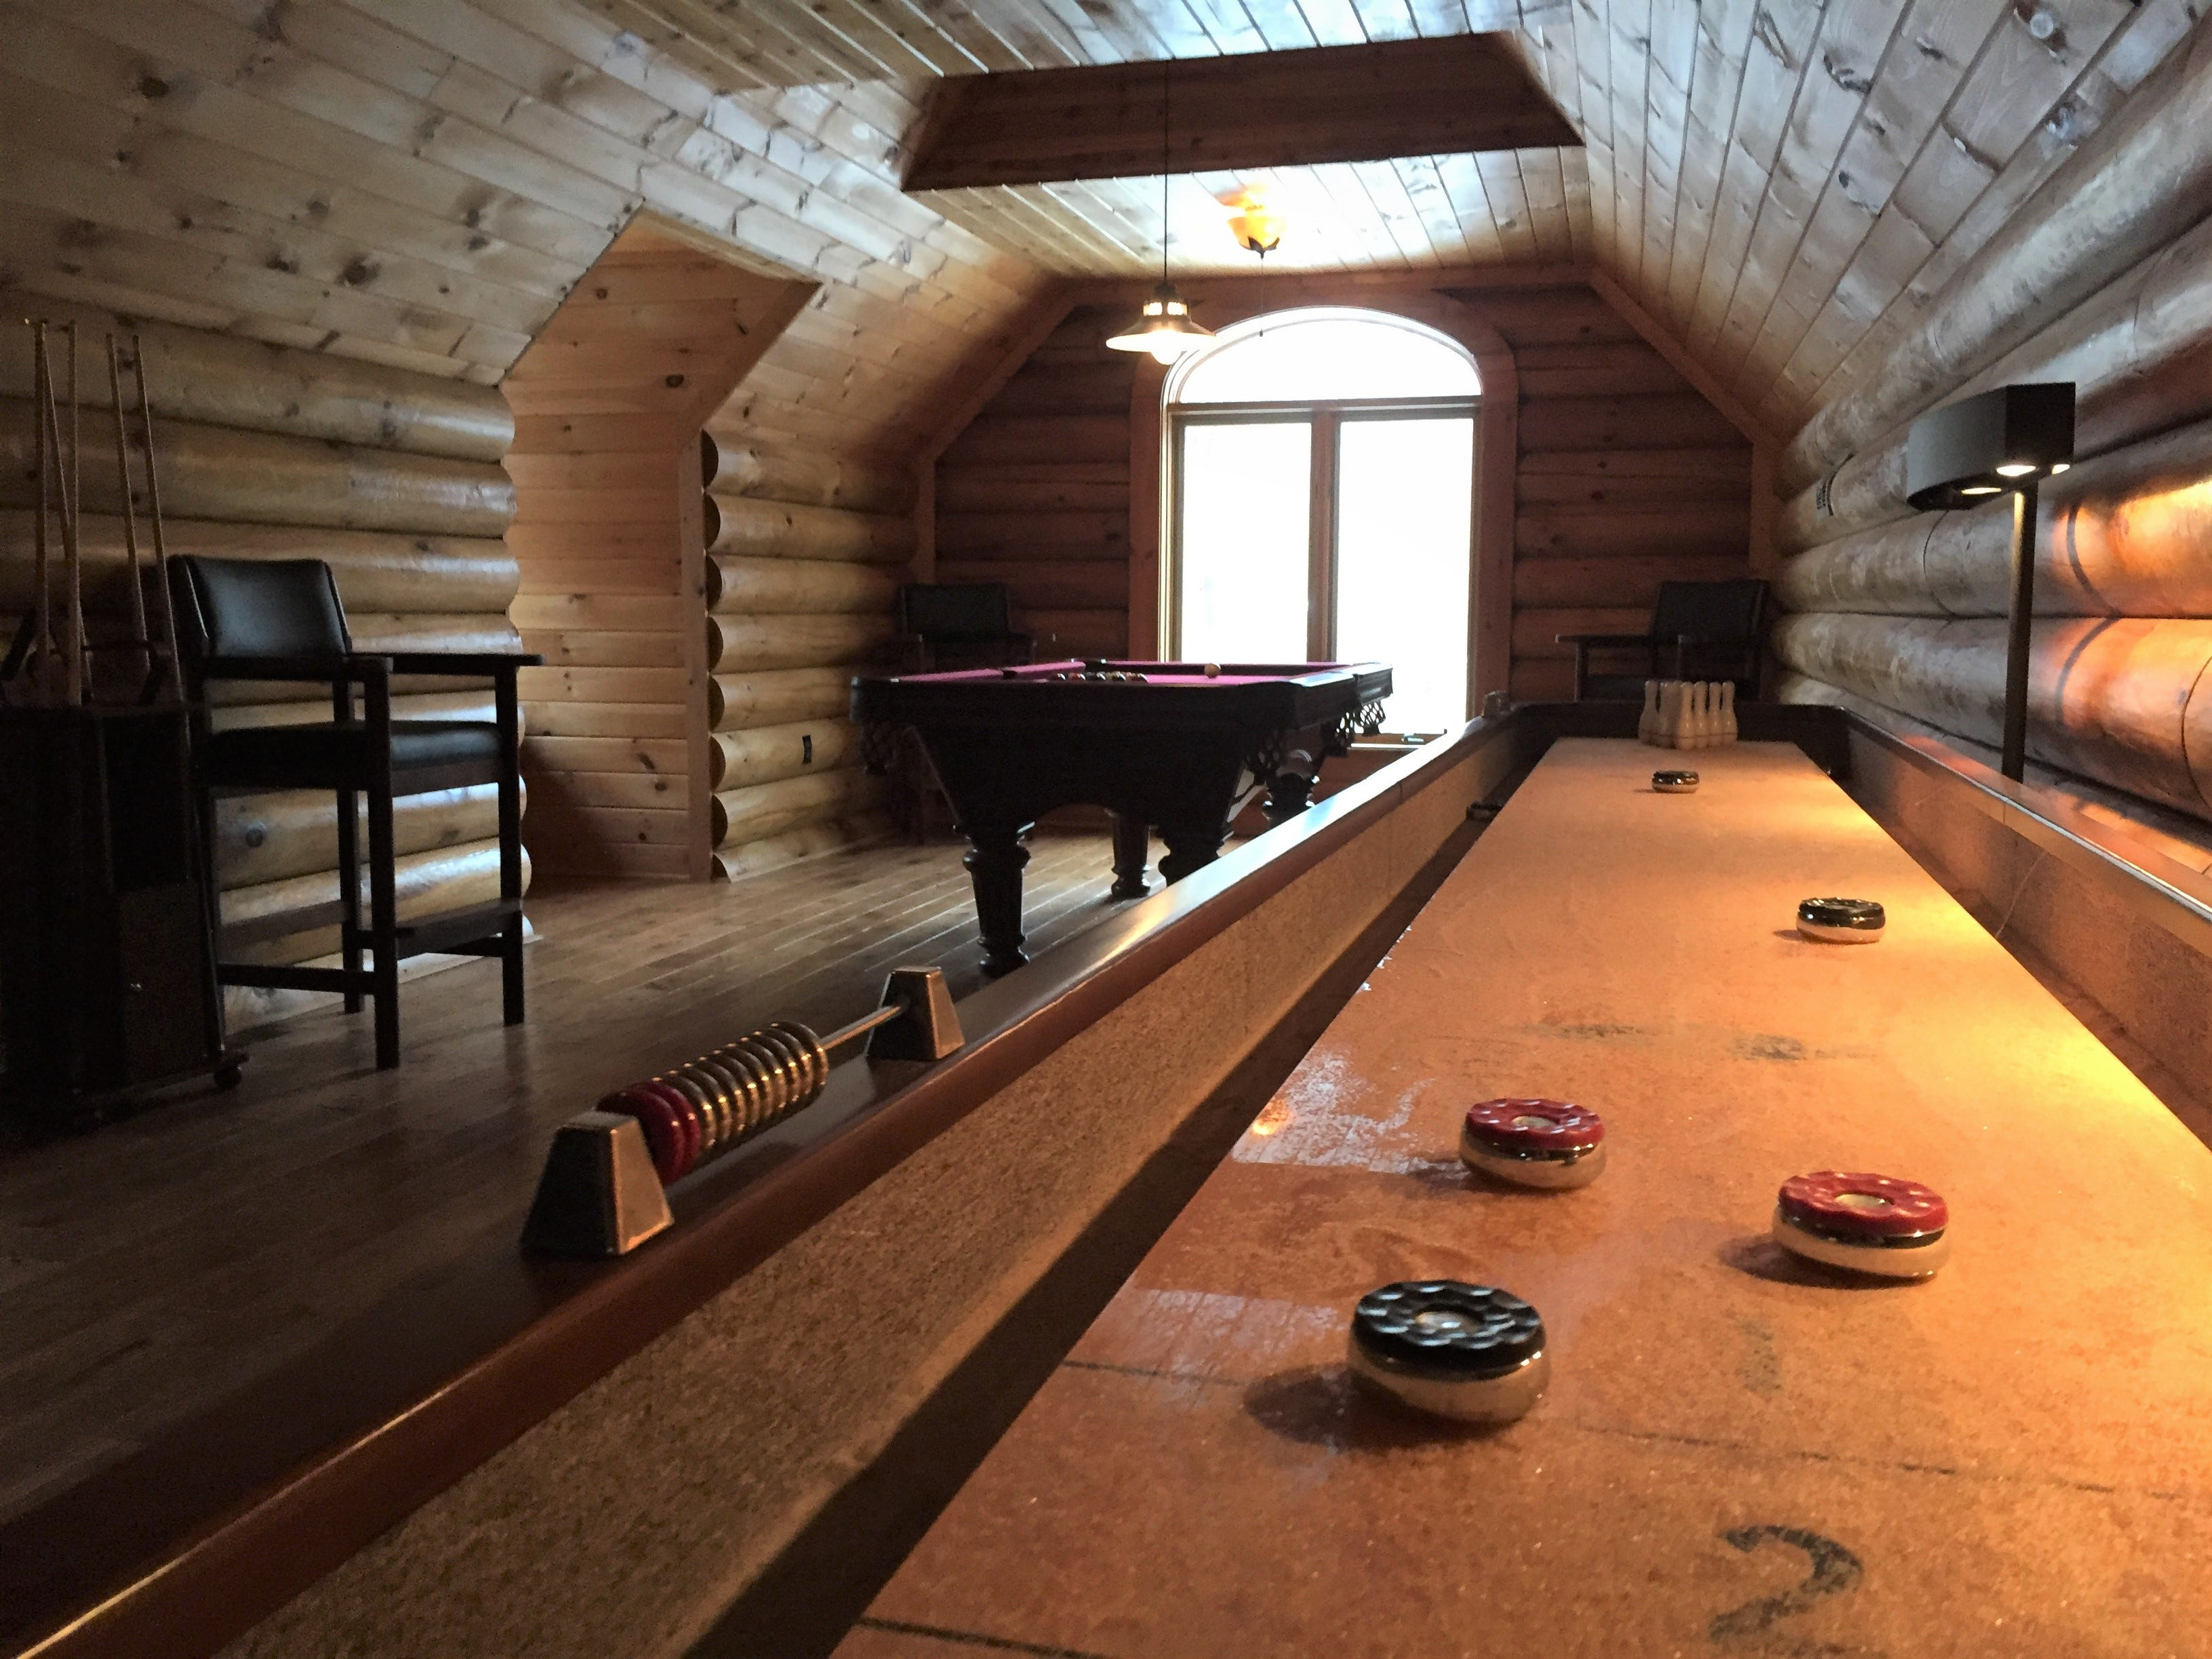 A pool table and shuffleboard are upstairs in a game room at a Hartland Township log cabin home, shown Wednesday, Nov. 21, 2018.